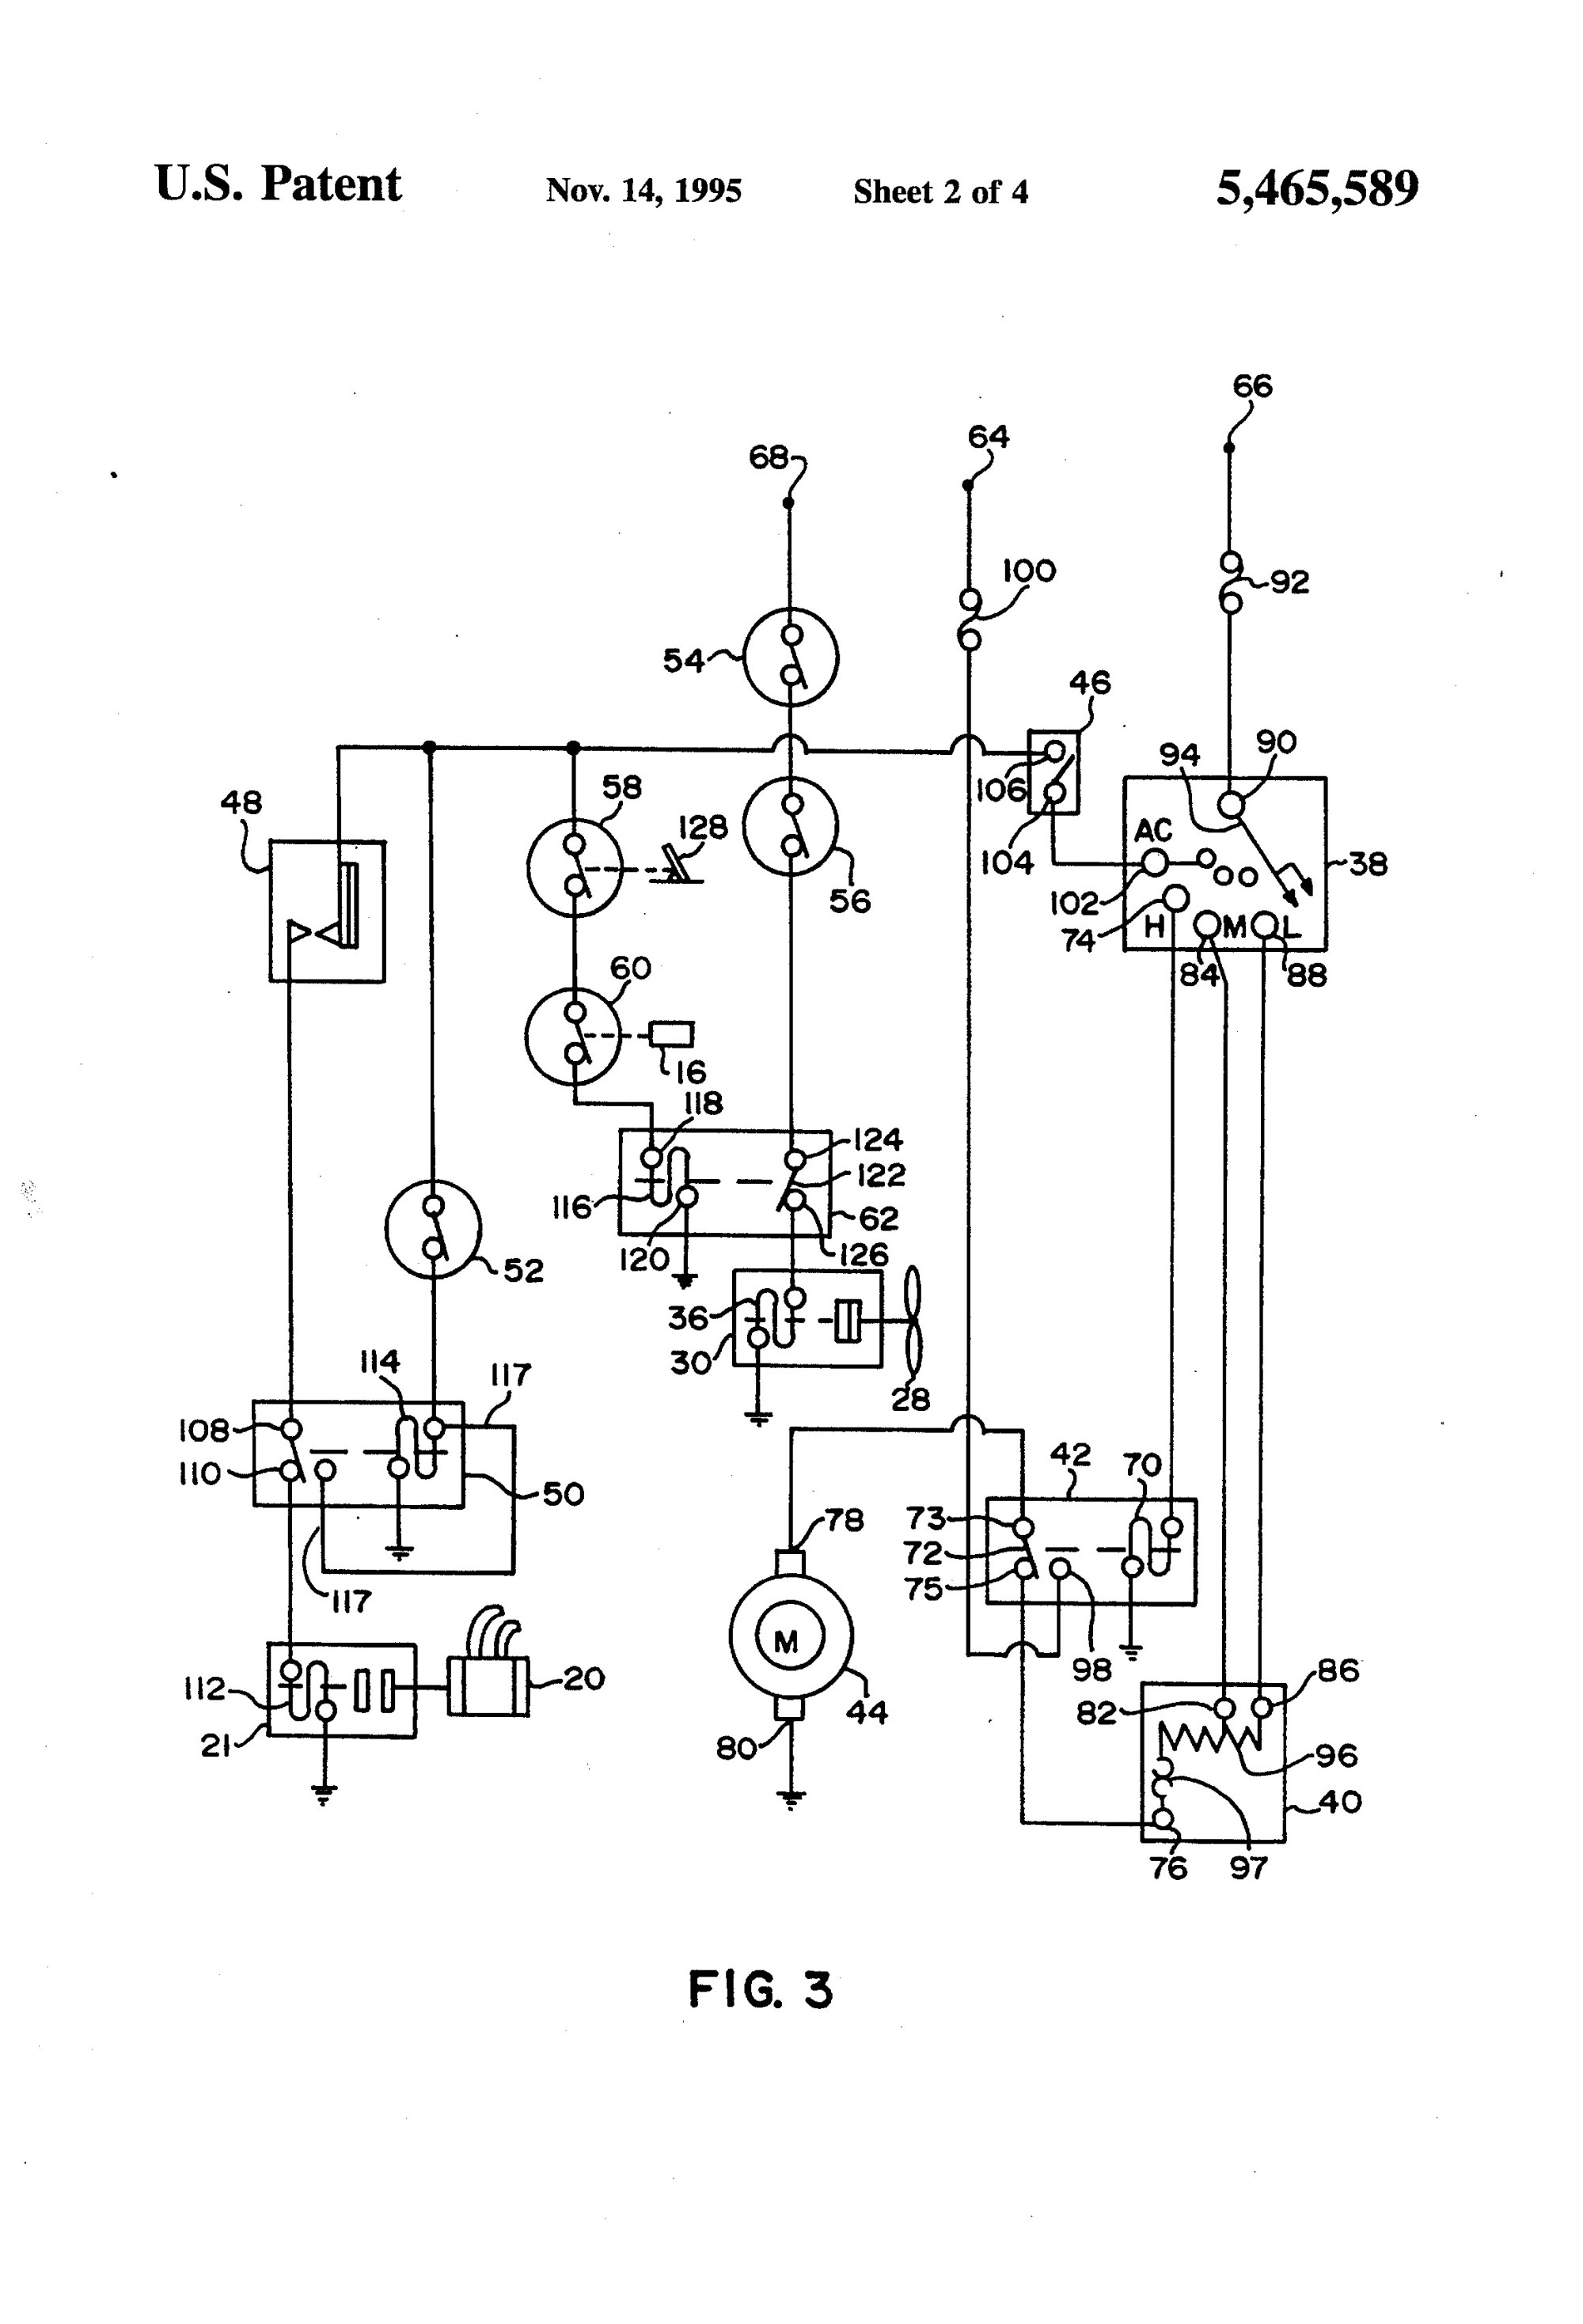 hight resolution of 1977 international truck wiring diagram wiring diagrams second 1977 international truck wiring diagram